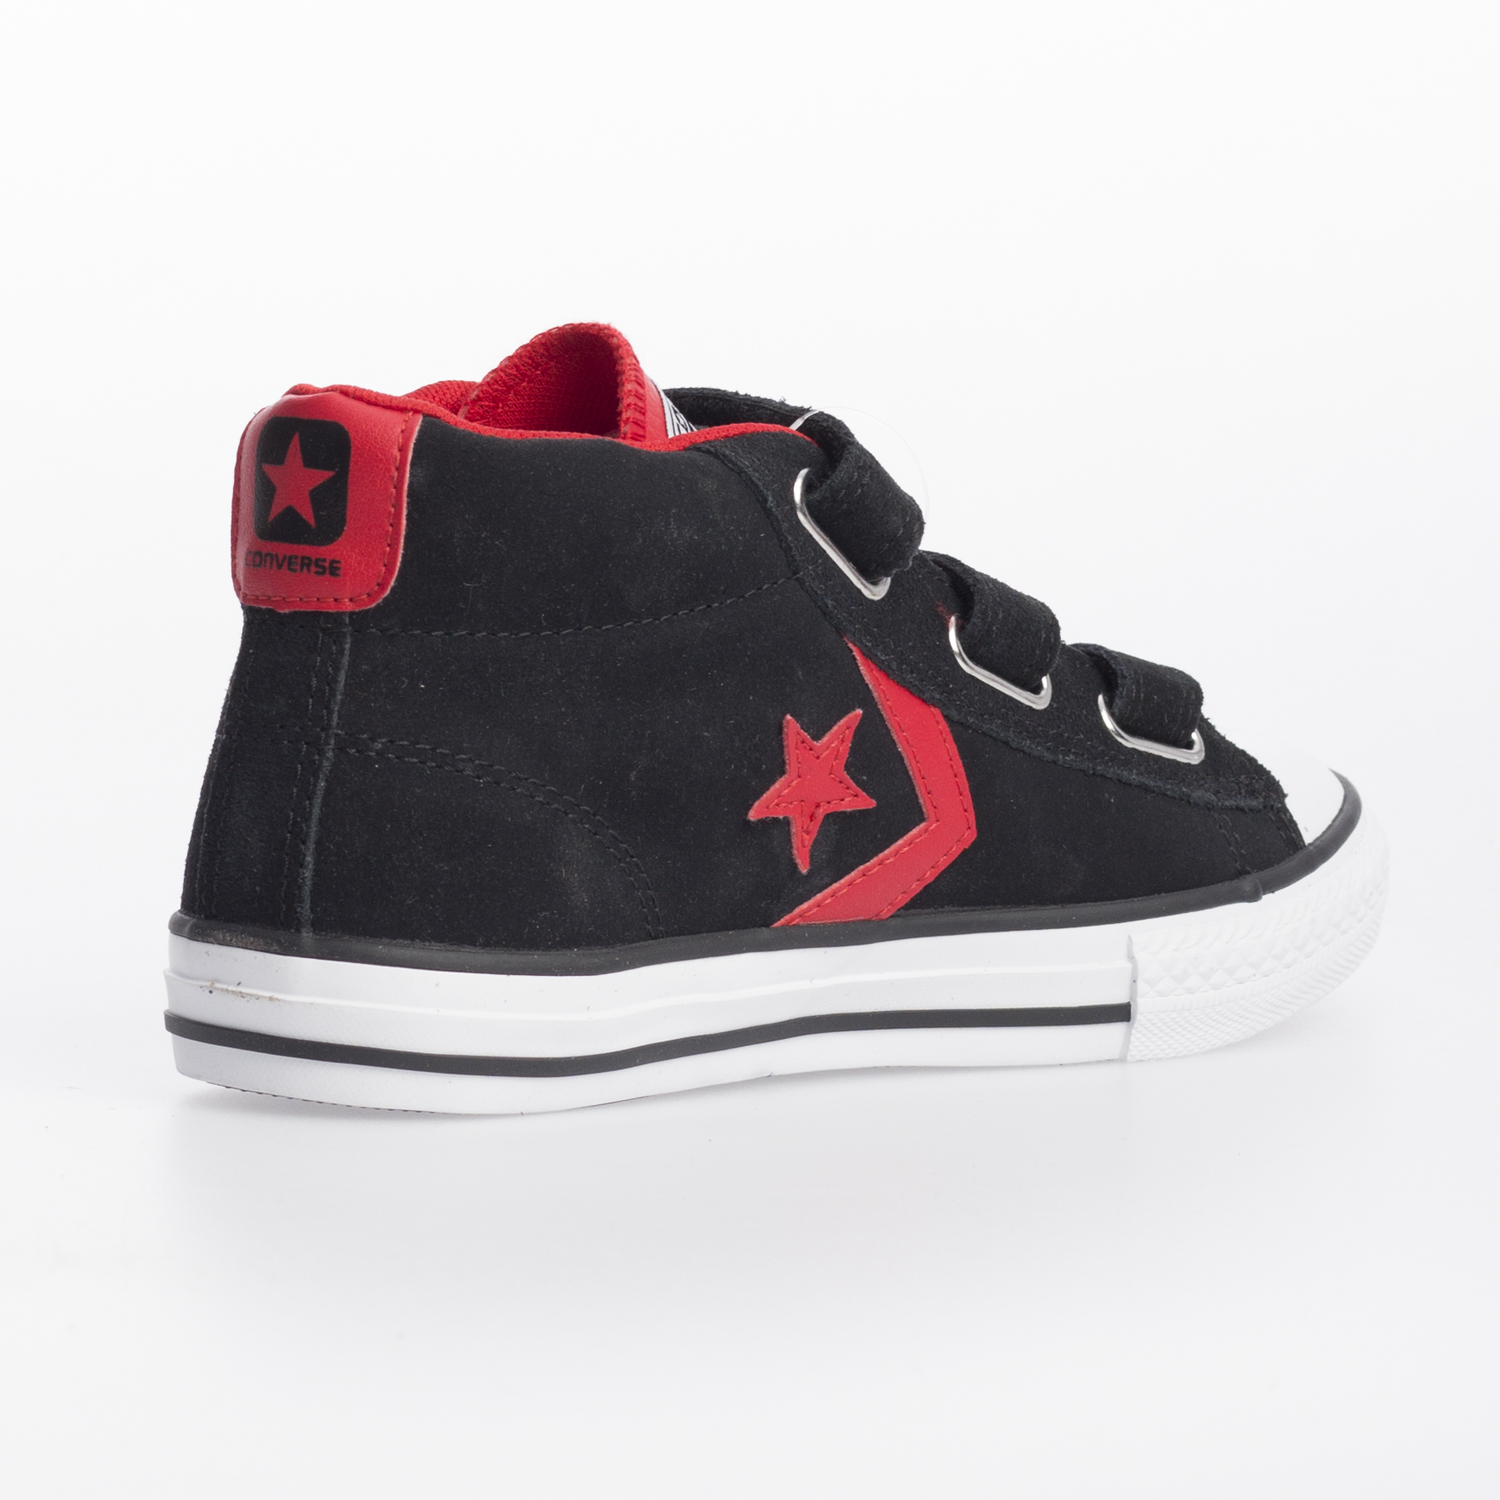 converse star player junior 3v leather mid